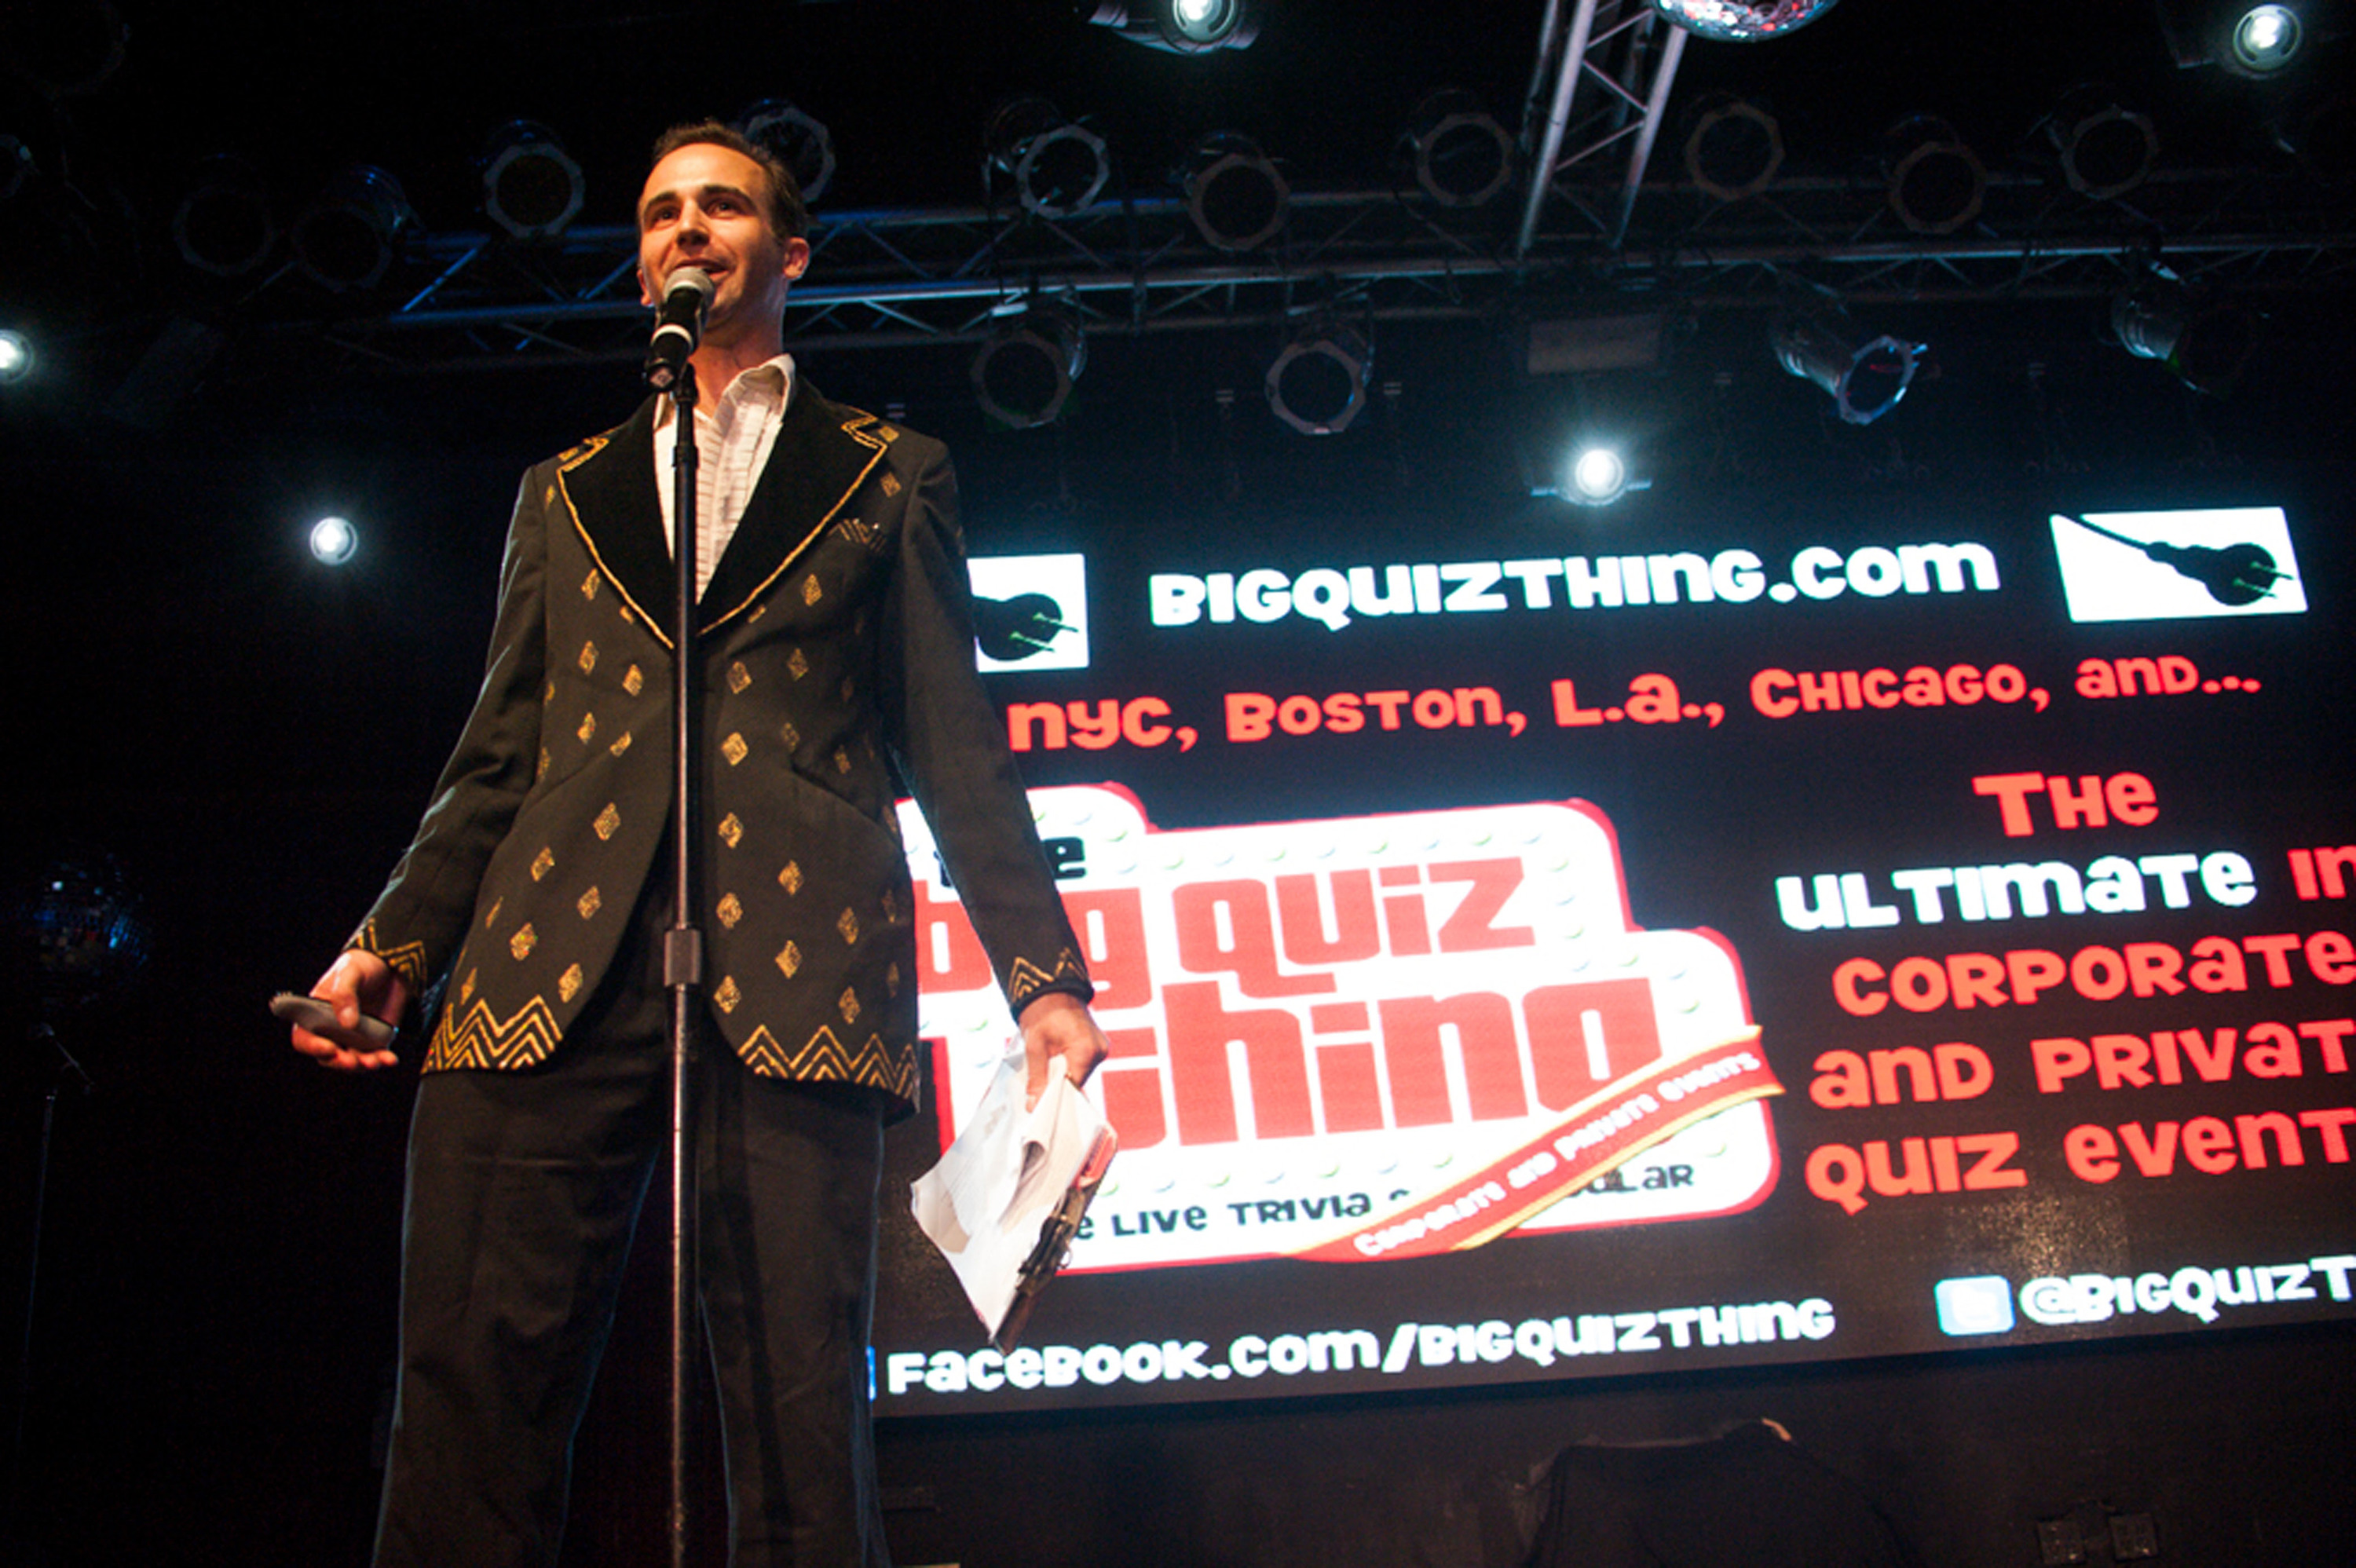 The Big Quiz Thing at Q.E.D. and the Slipper Room